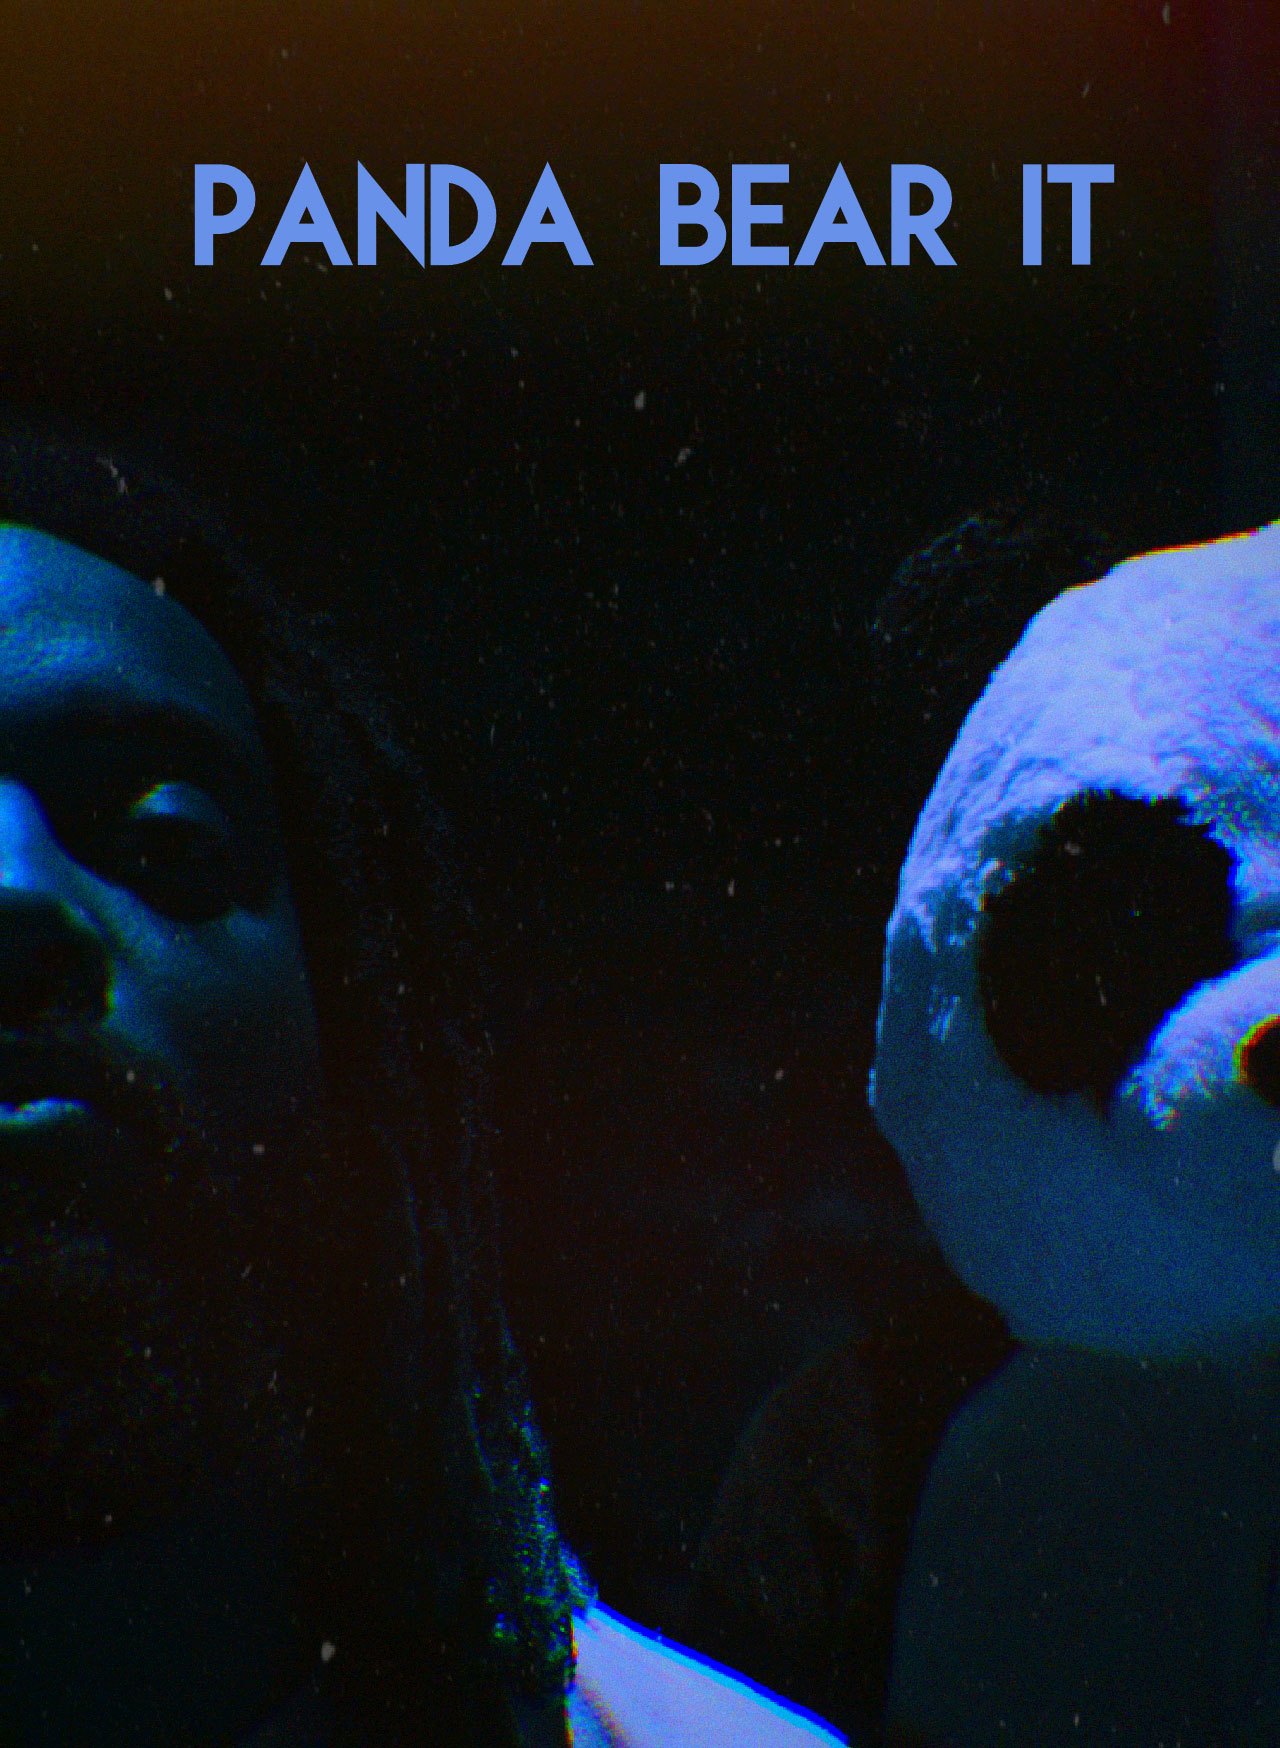 Panda Bear It - main image